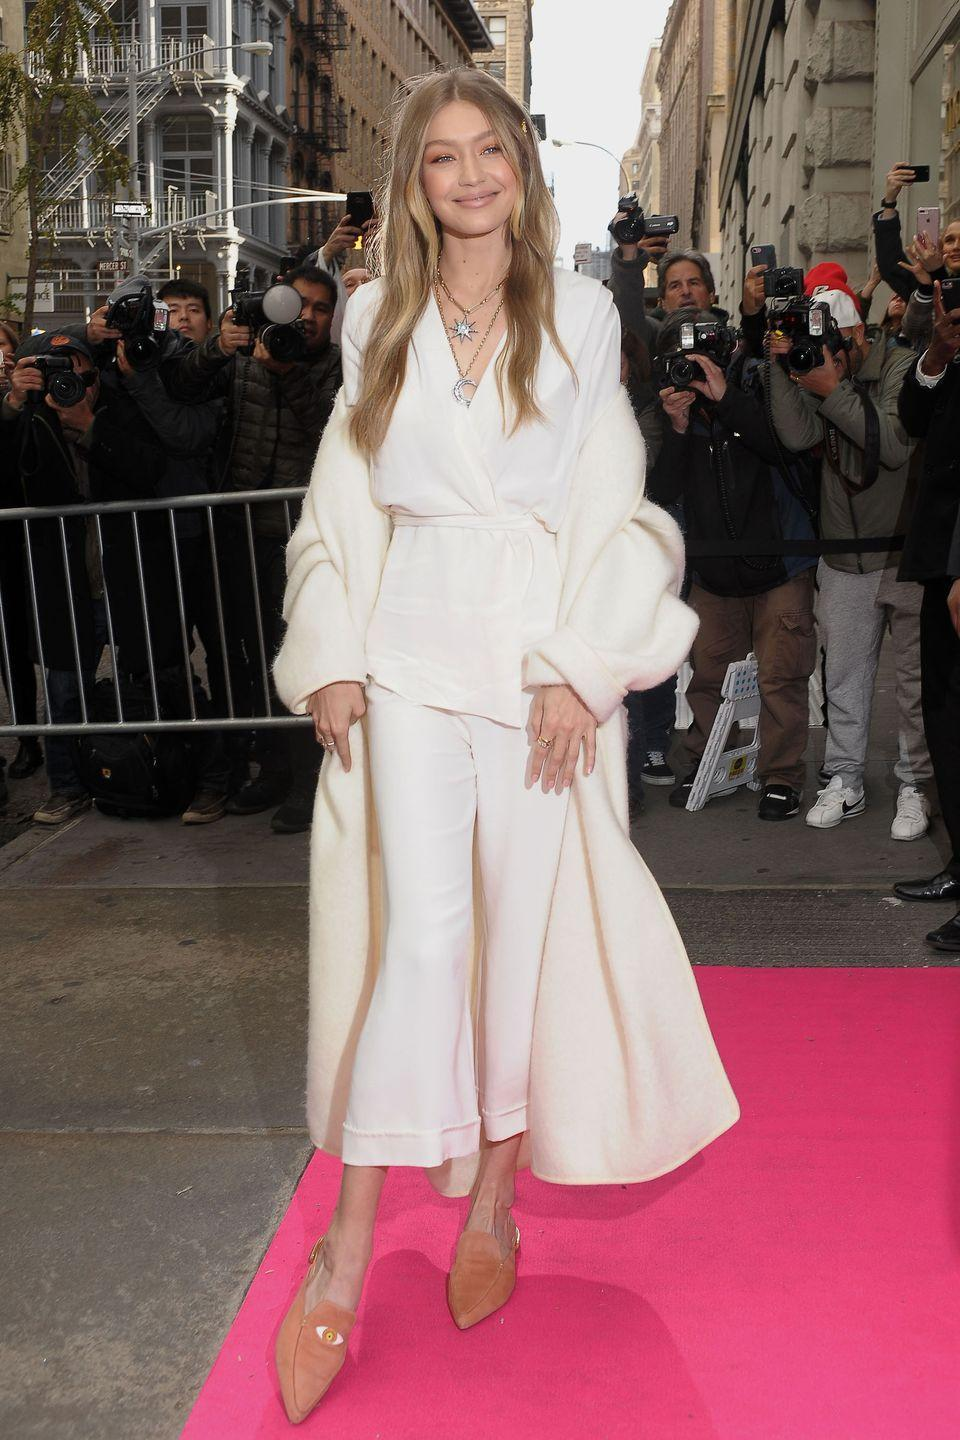 """<p>In a white wrap blouse and flared cropped trousers, a white mohair coat, layered necklaces, and her new <a href=""""https://www.harpersbazaar.com/fashion/models/a13143625/gigi-hadid-stuart-weitzman-mule/"""" rel=""""nofollow noopener"""" target=""""_blank"""" data-ylk=""""slk:Gigi Hadid x Stuart Weitzman mules"""" class=""""link rapid-noclick-resp"""">Gigi Hadid x Stuart Weitzman mules</a> at a launch event for the collab in NYC.</p>"""